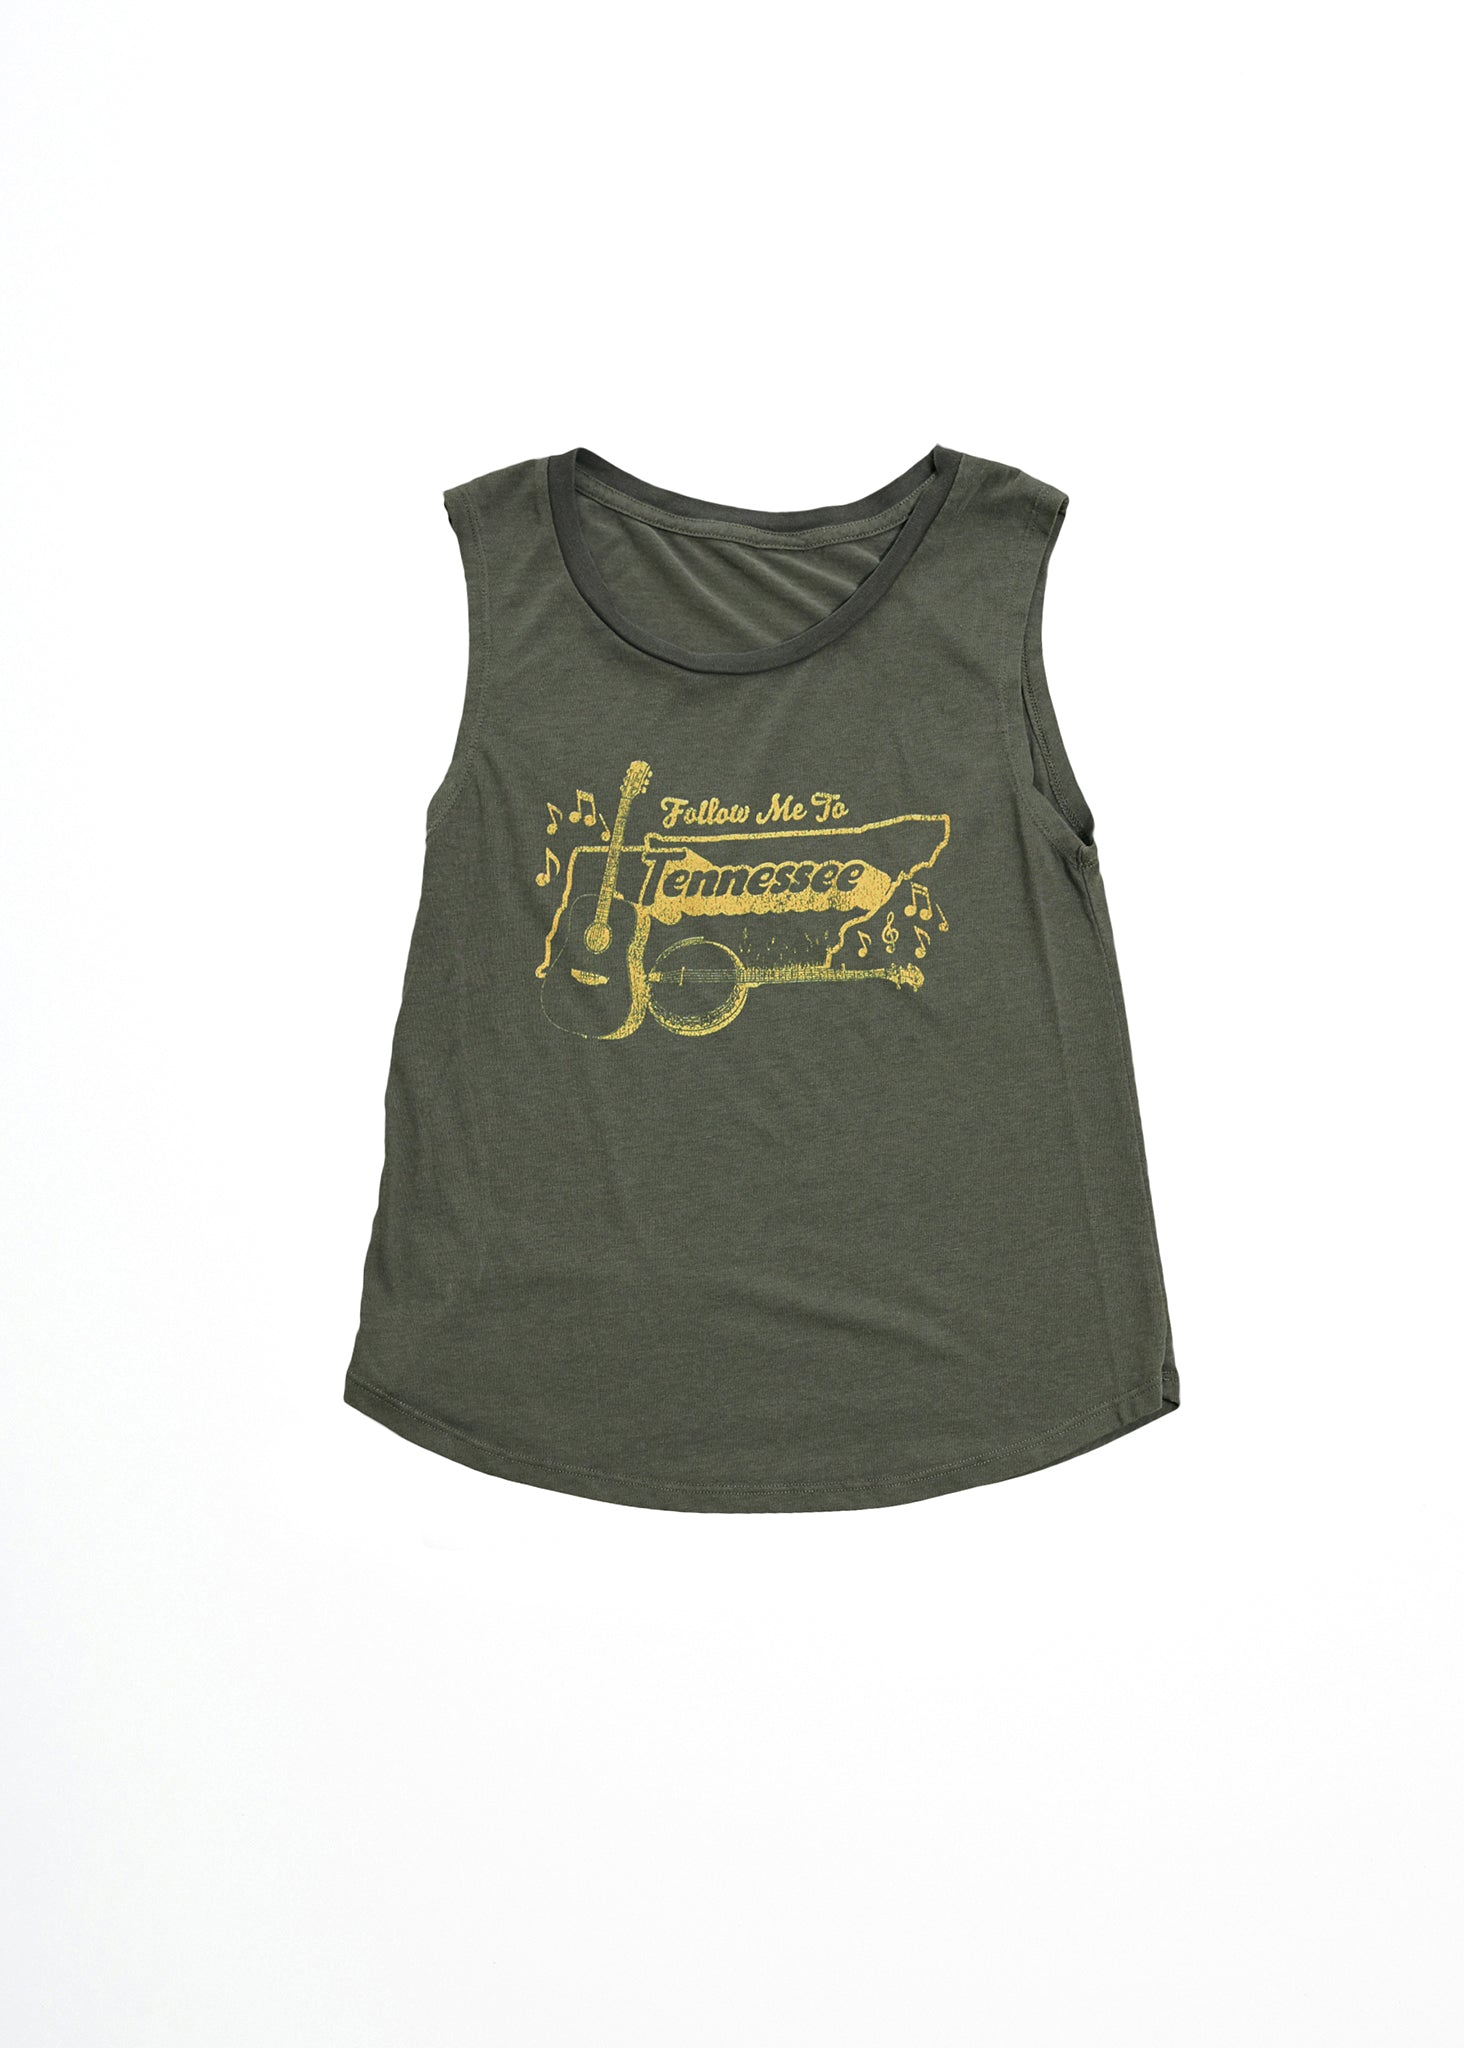 FOLLOW ME TO TENNESSEE MUSCLE TEE - Women's Tee Shirt - Midnight Rider